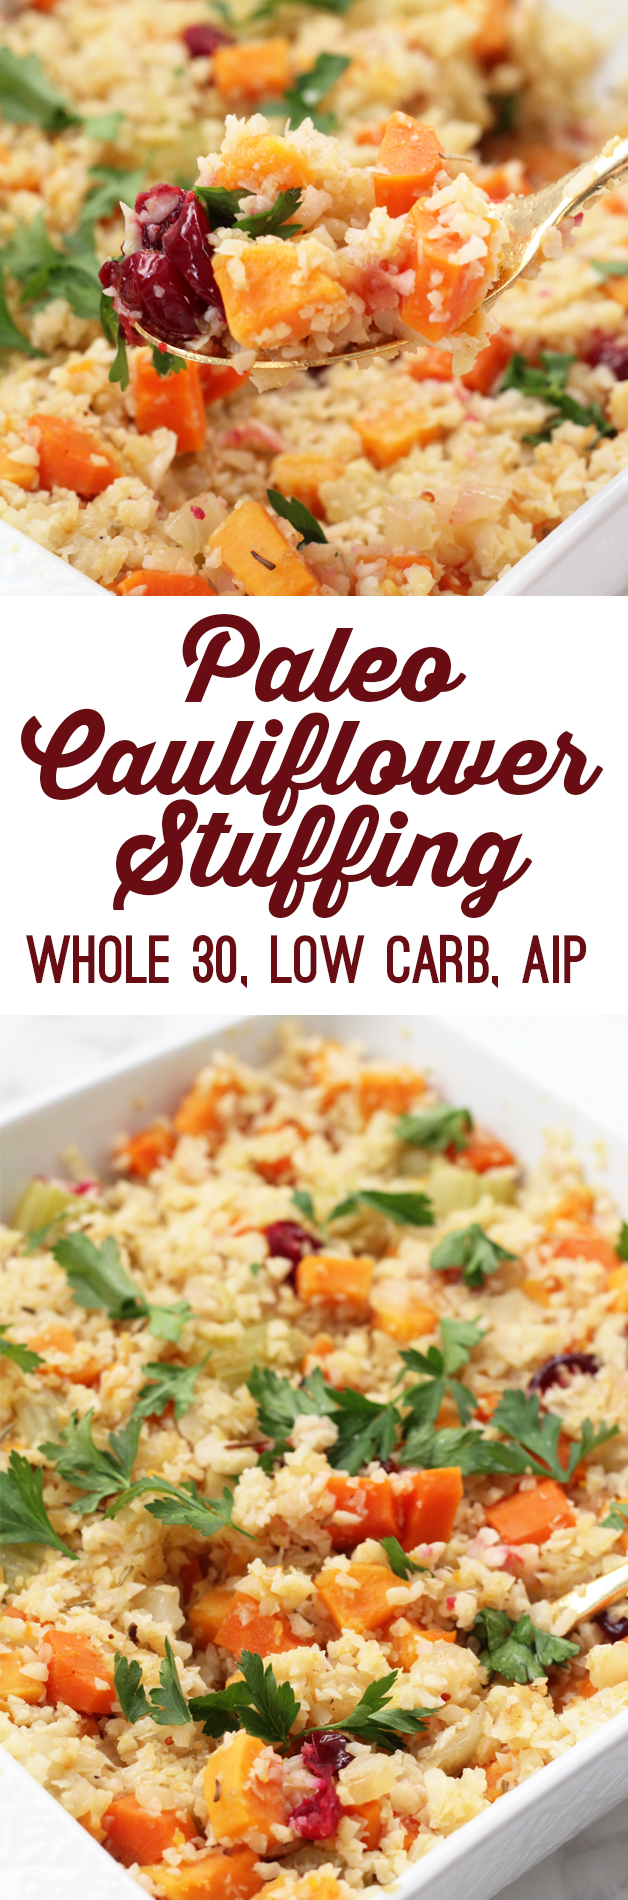 Paleo Thanksgiving Cauliflower Stuffing (AIP, Whole 30 & Low Carb)